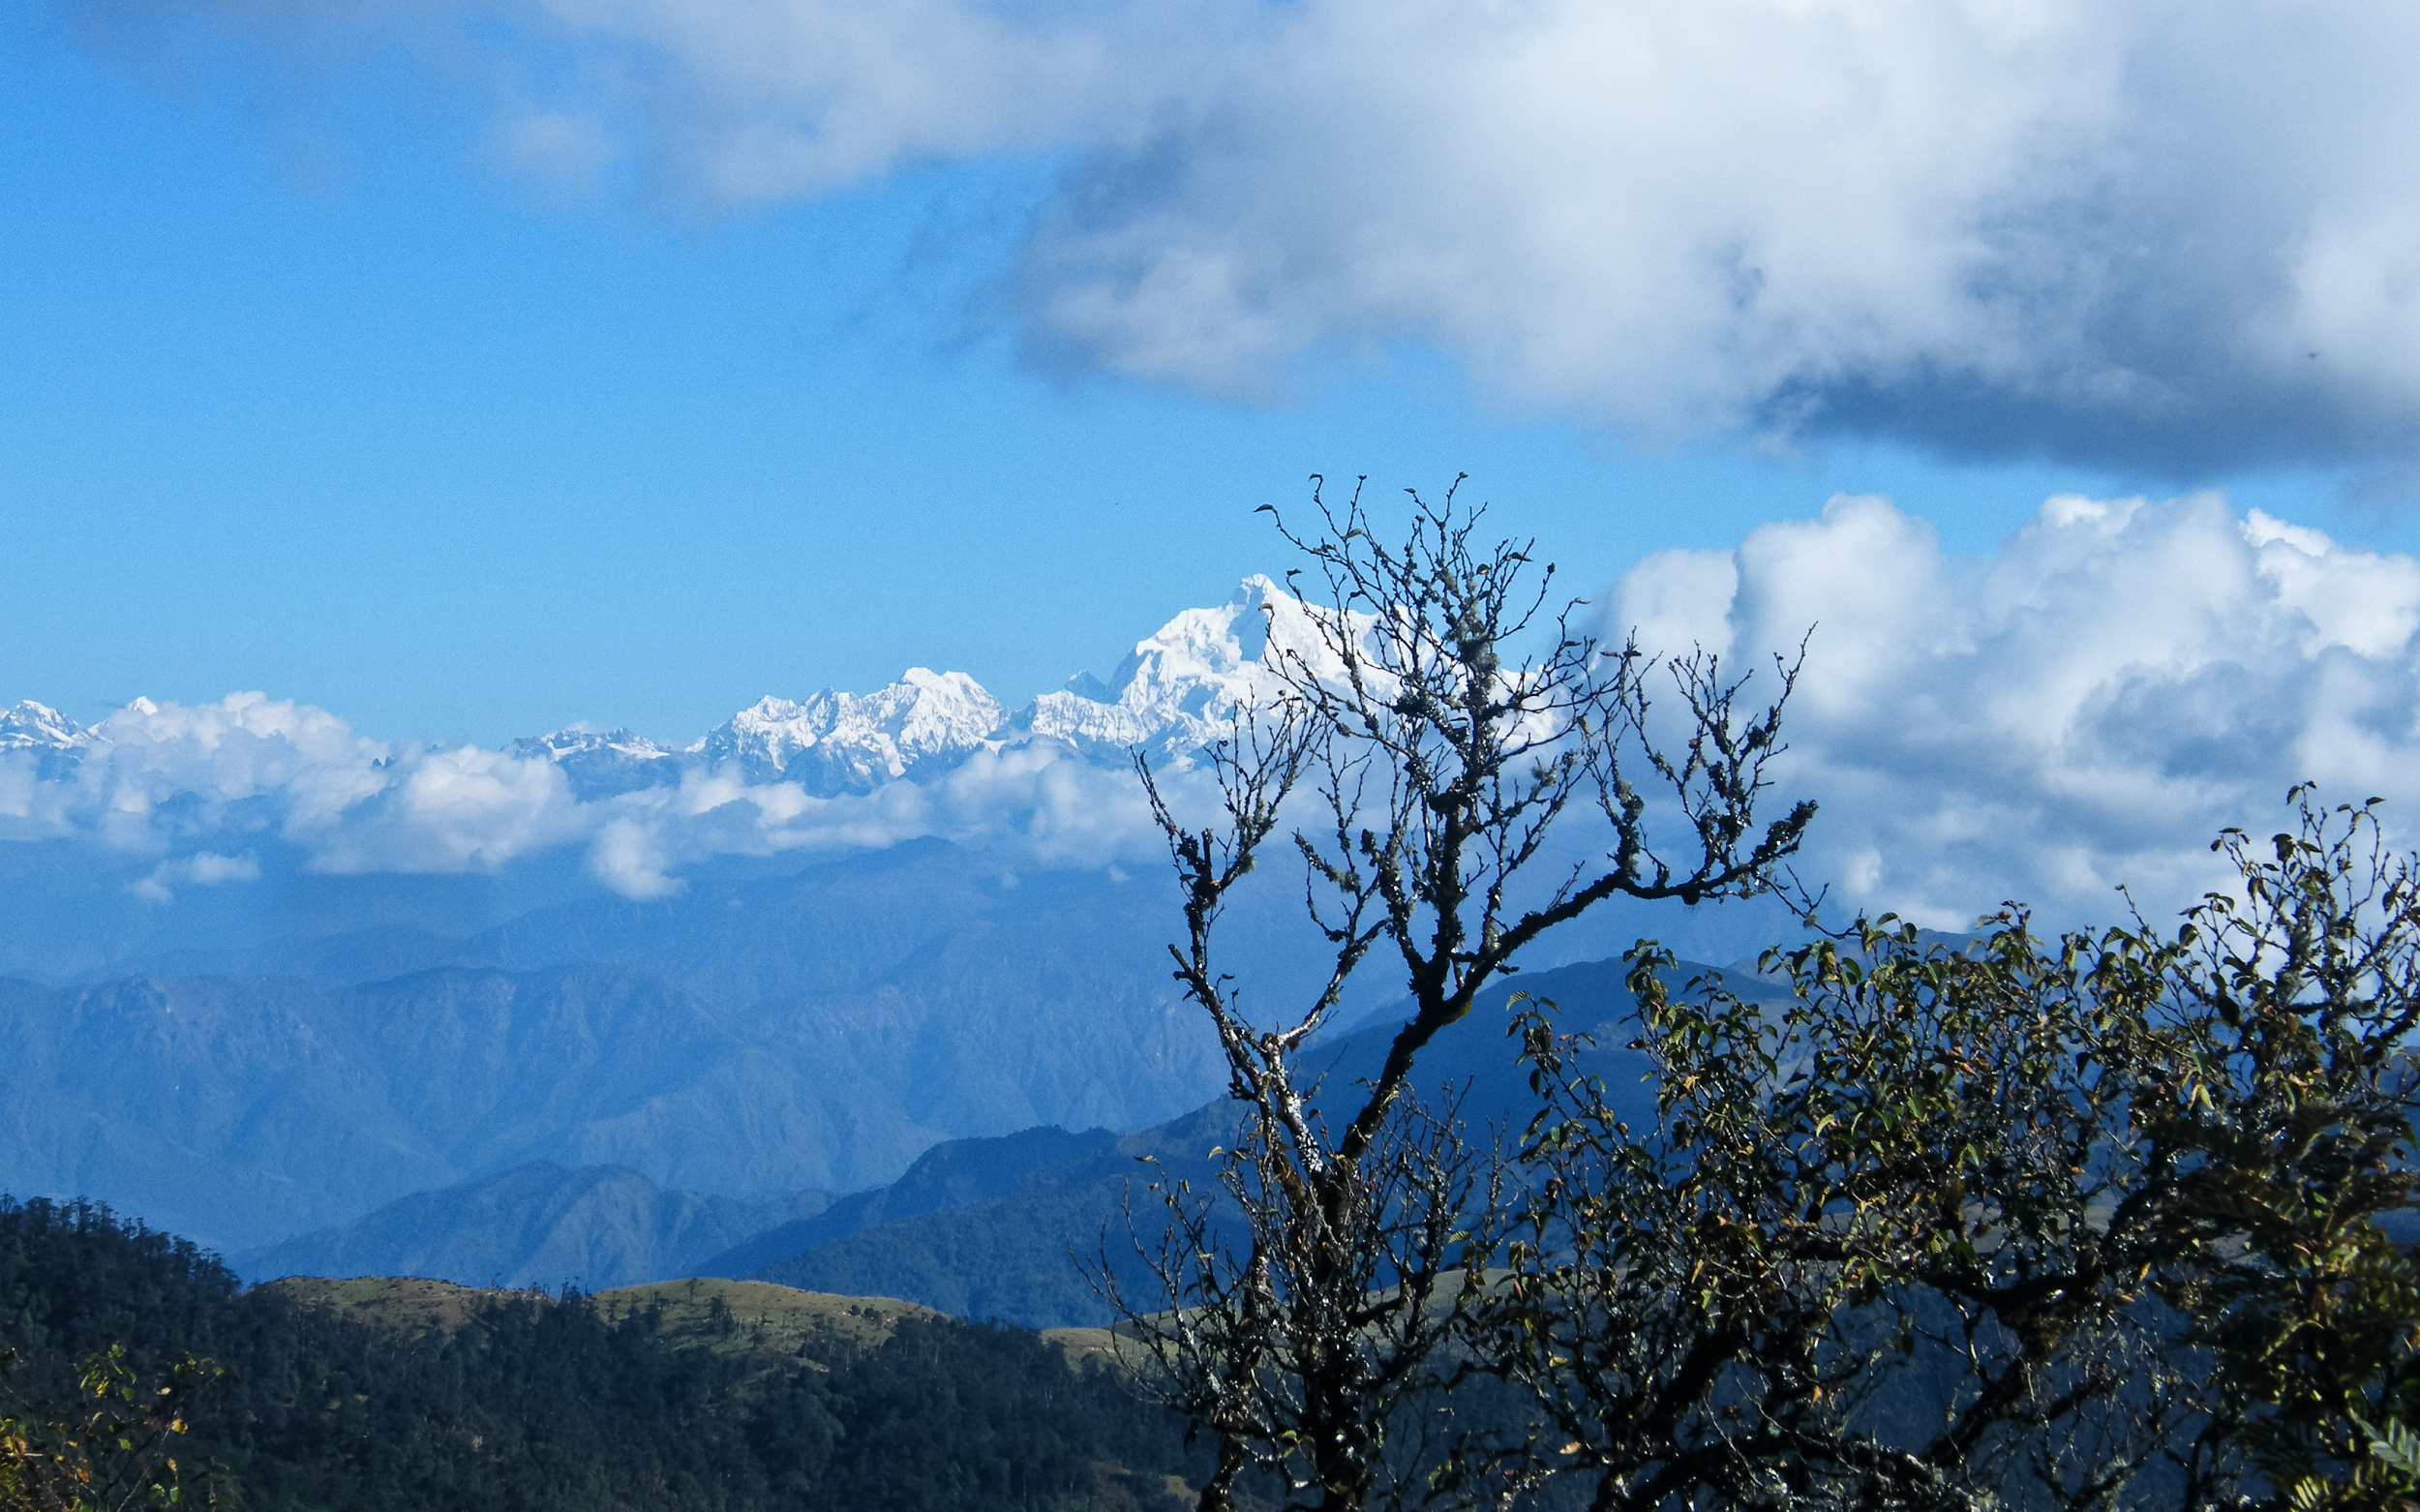 Himalaya, Sikkim - The Ecotourism Capital of India